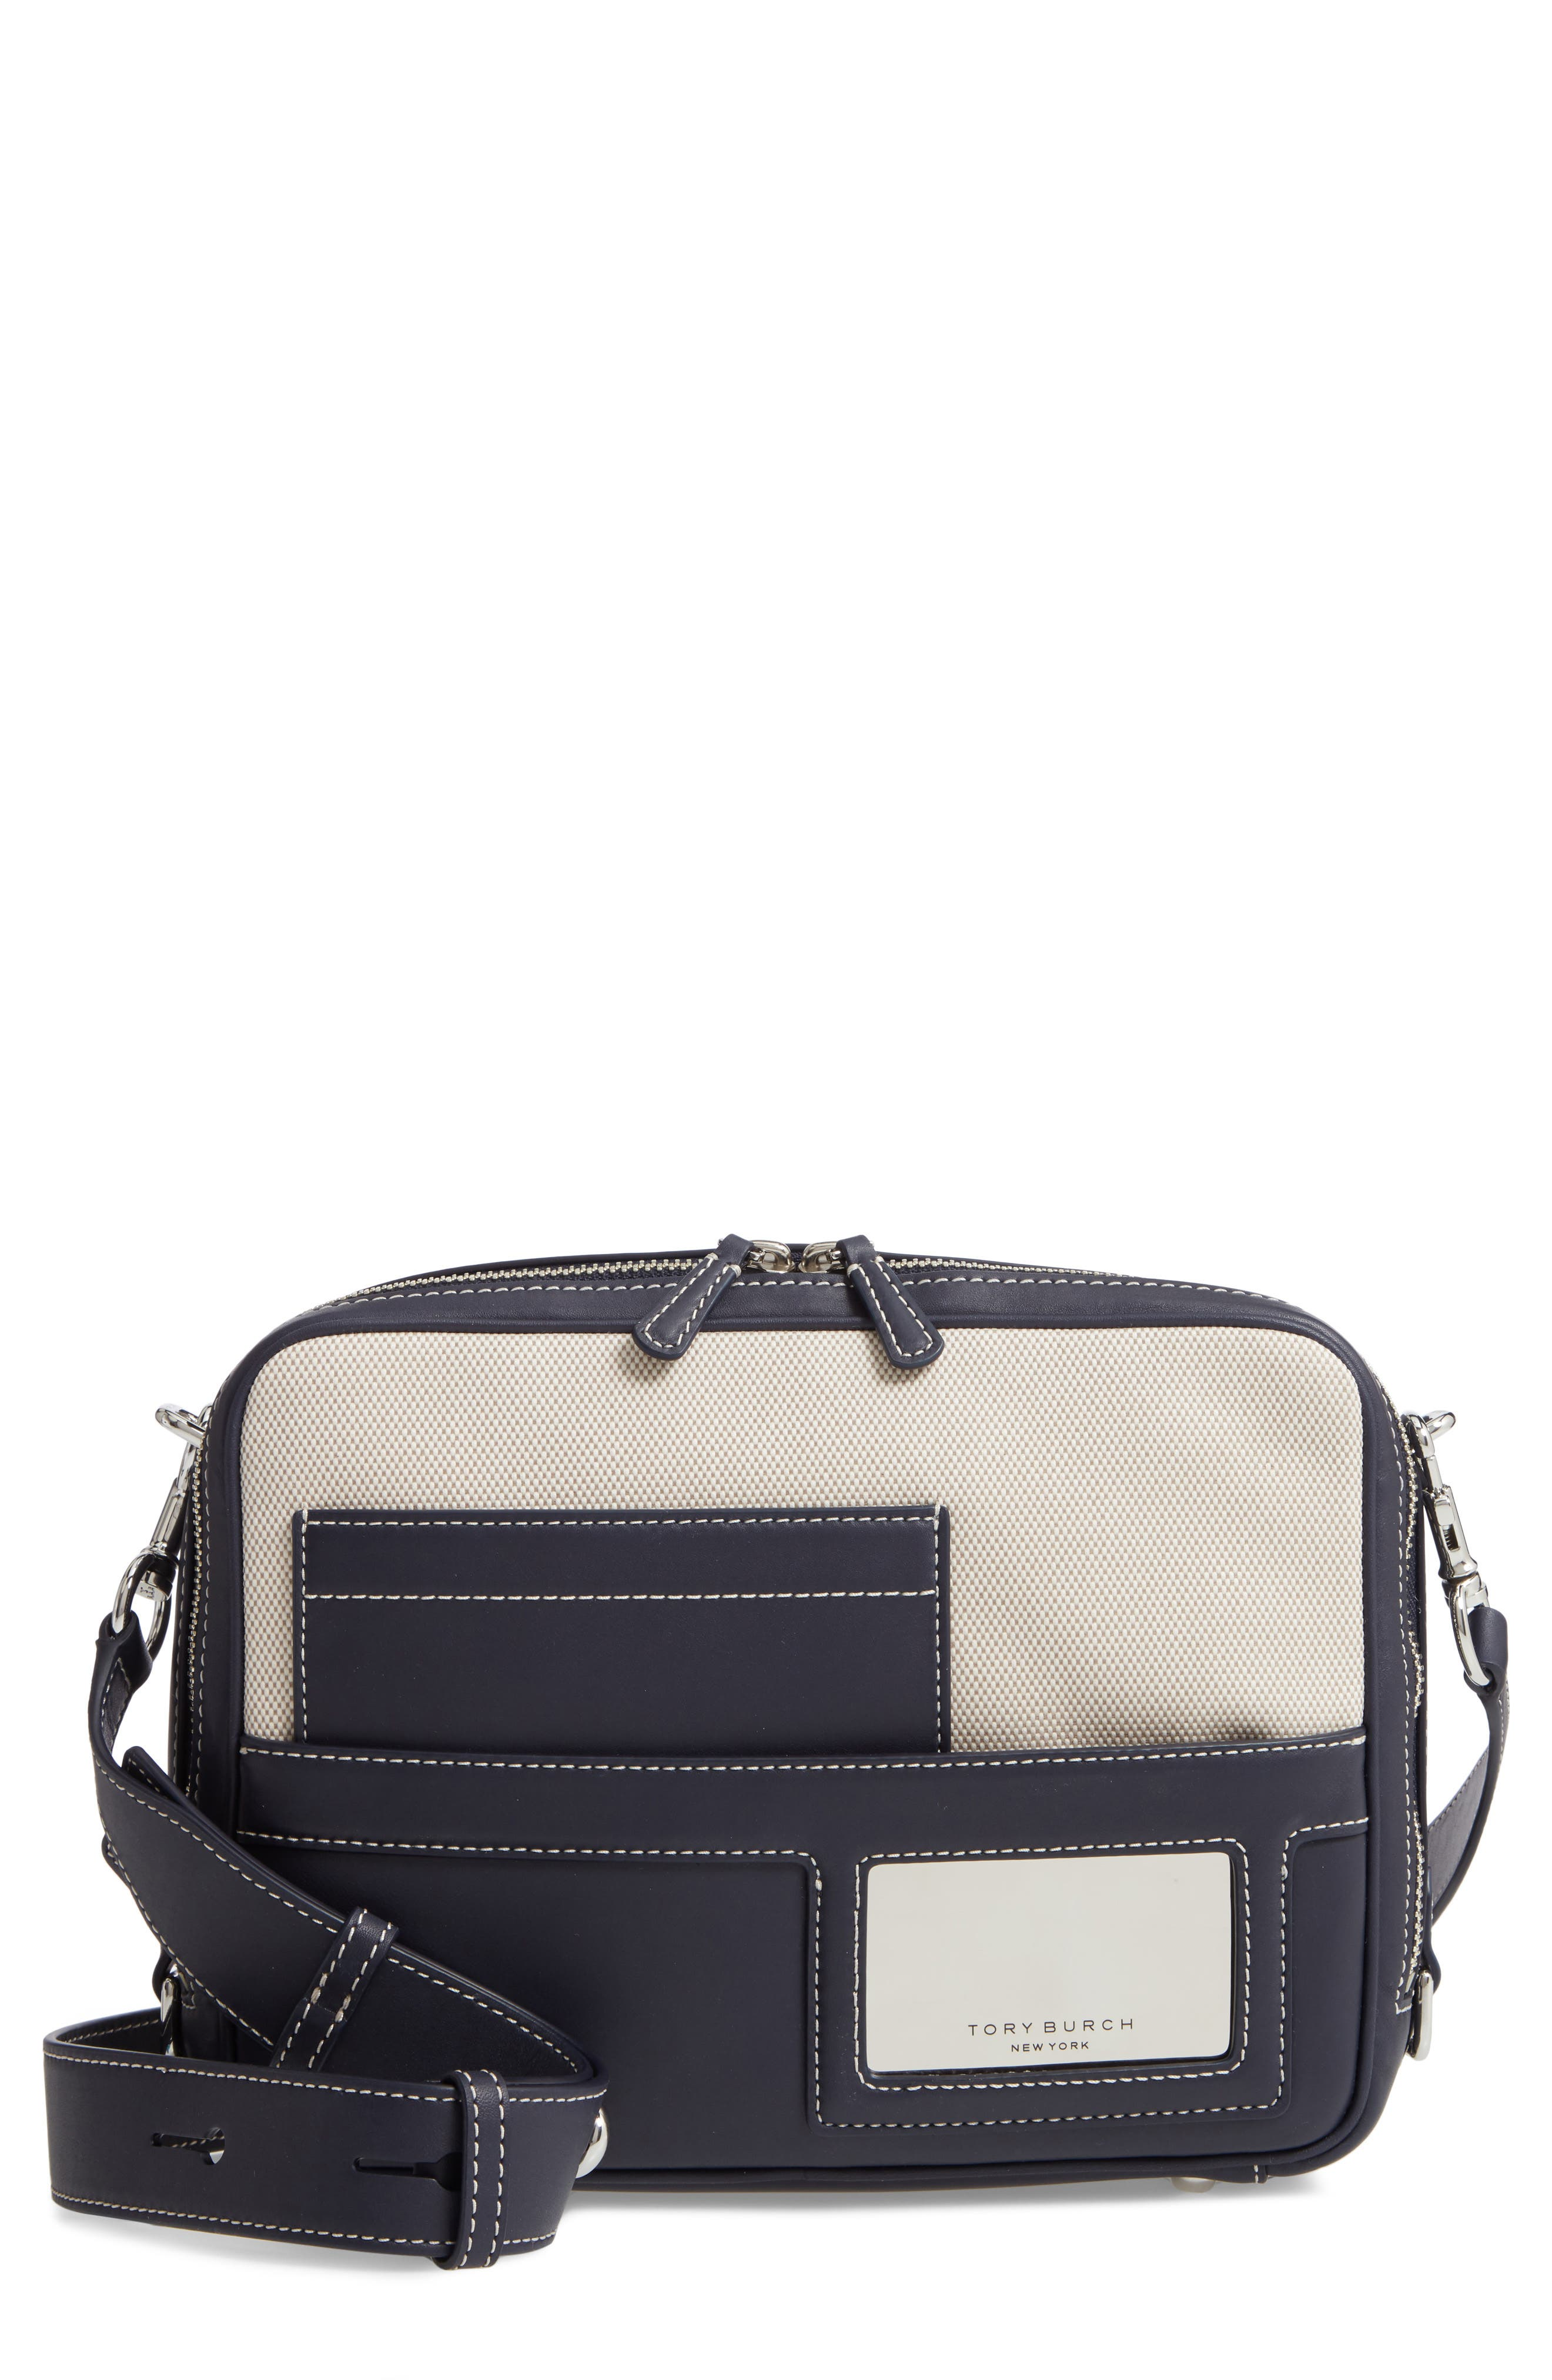 TORY BURCH Leather & Canvas Camera Bag, Main, color, MIDNIGHT